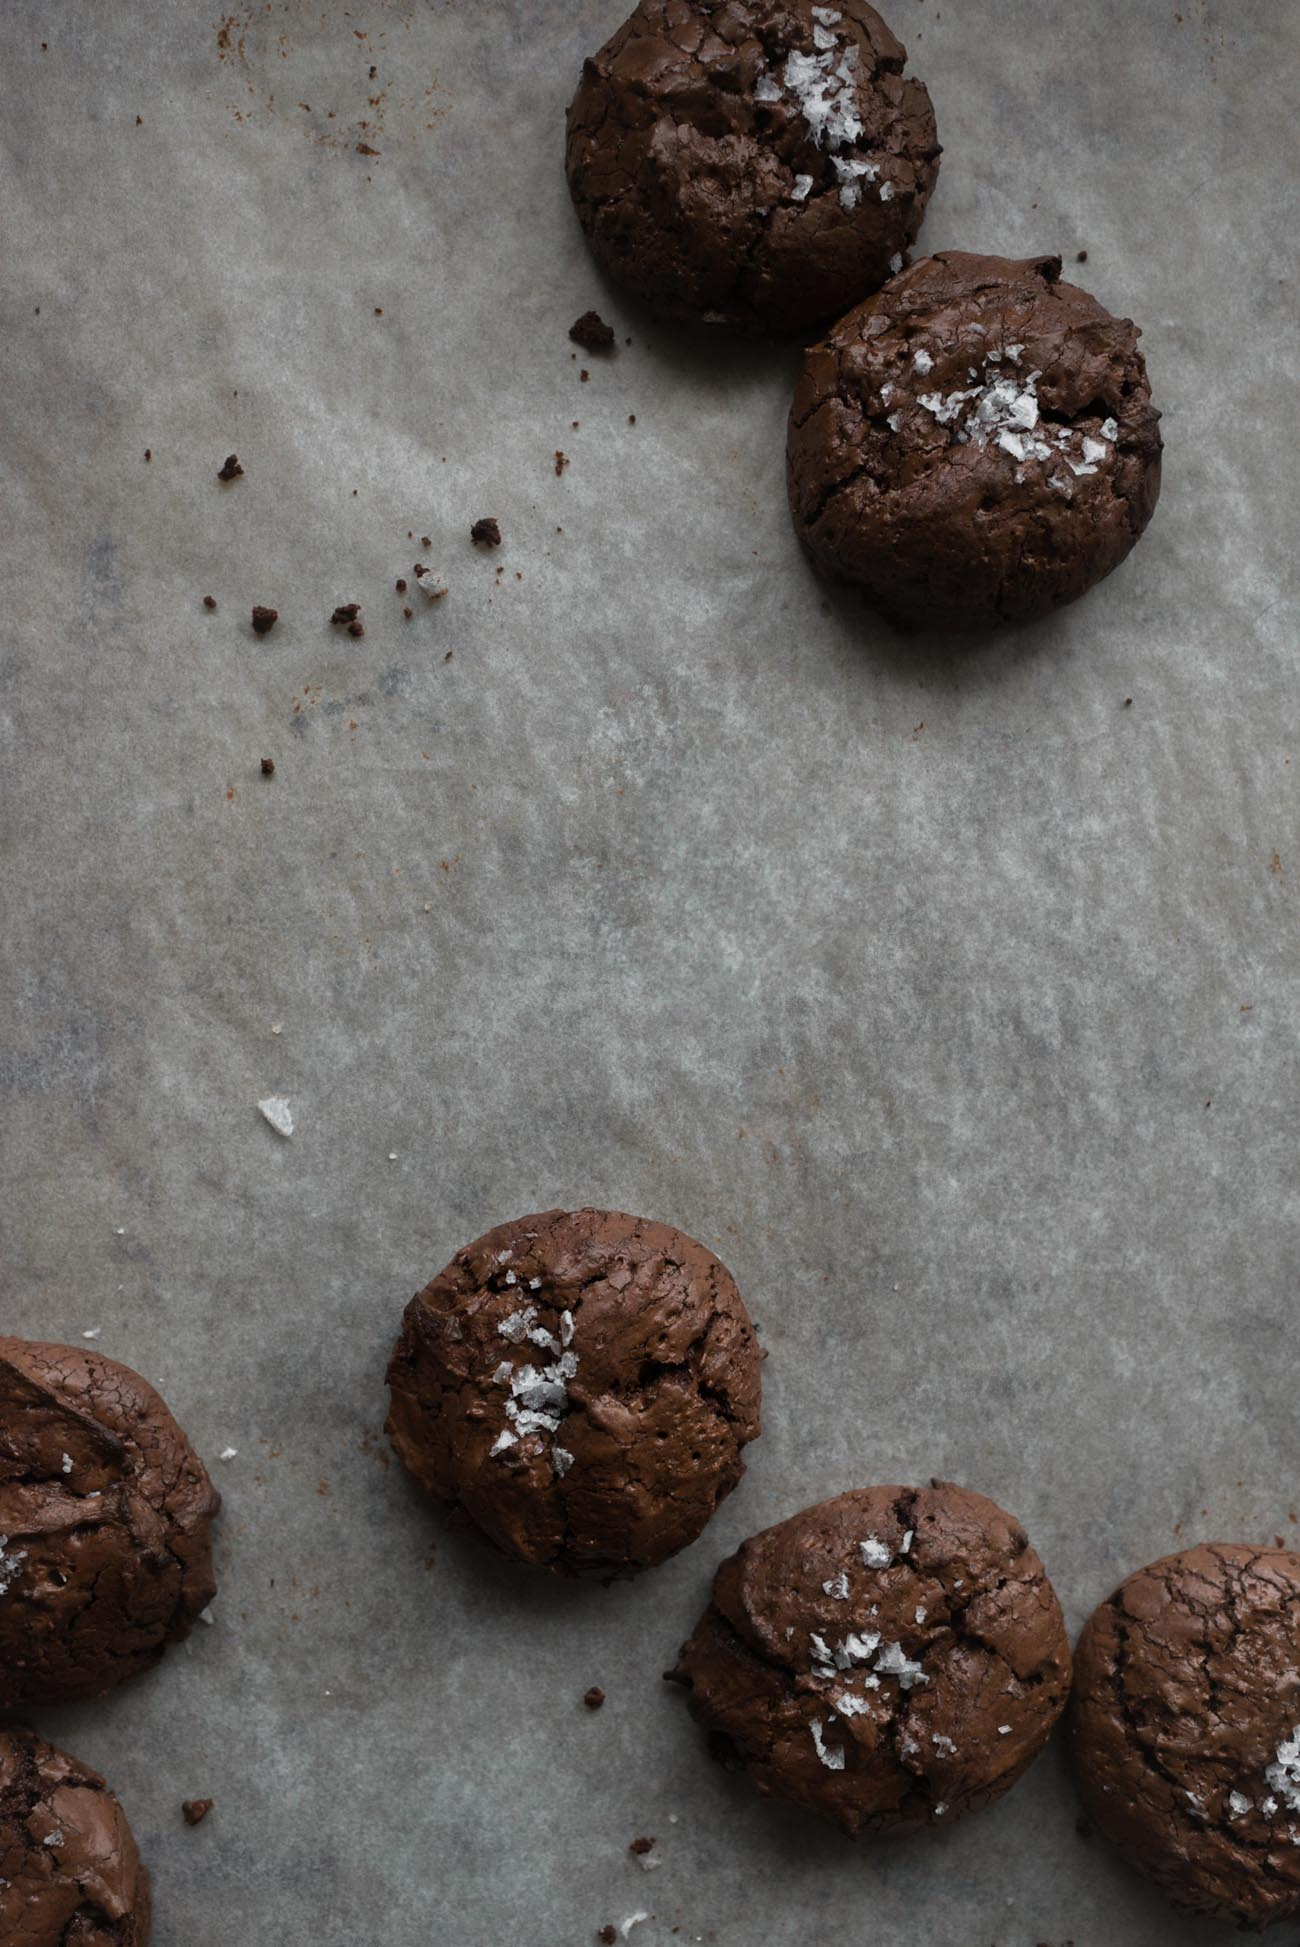 Bitter-Chocolate-Olive-Oil-Cookies-with-Buckwheat-and-Salt-4.jpg